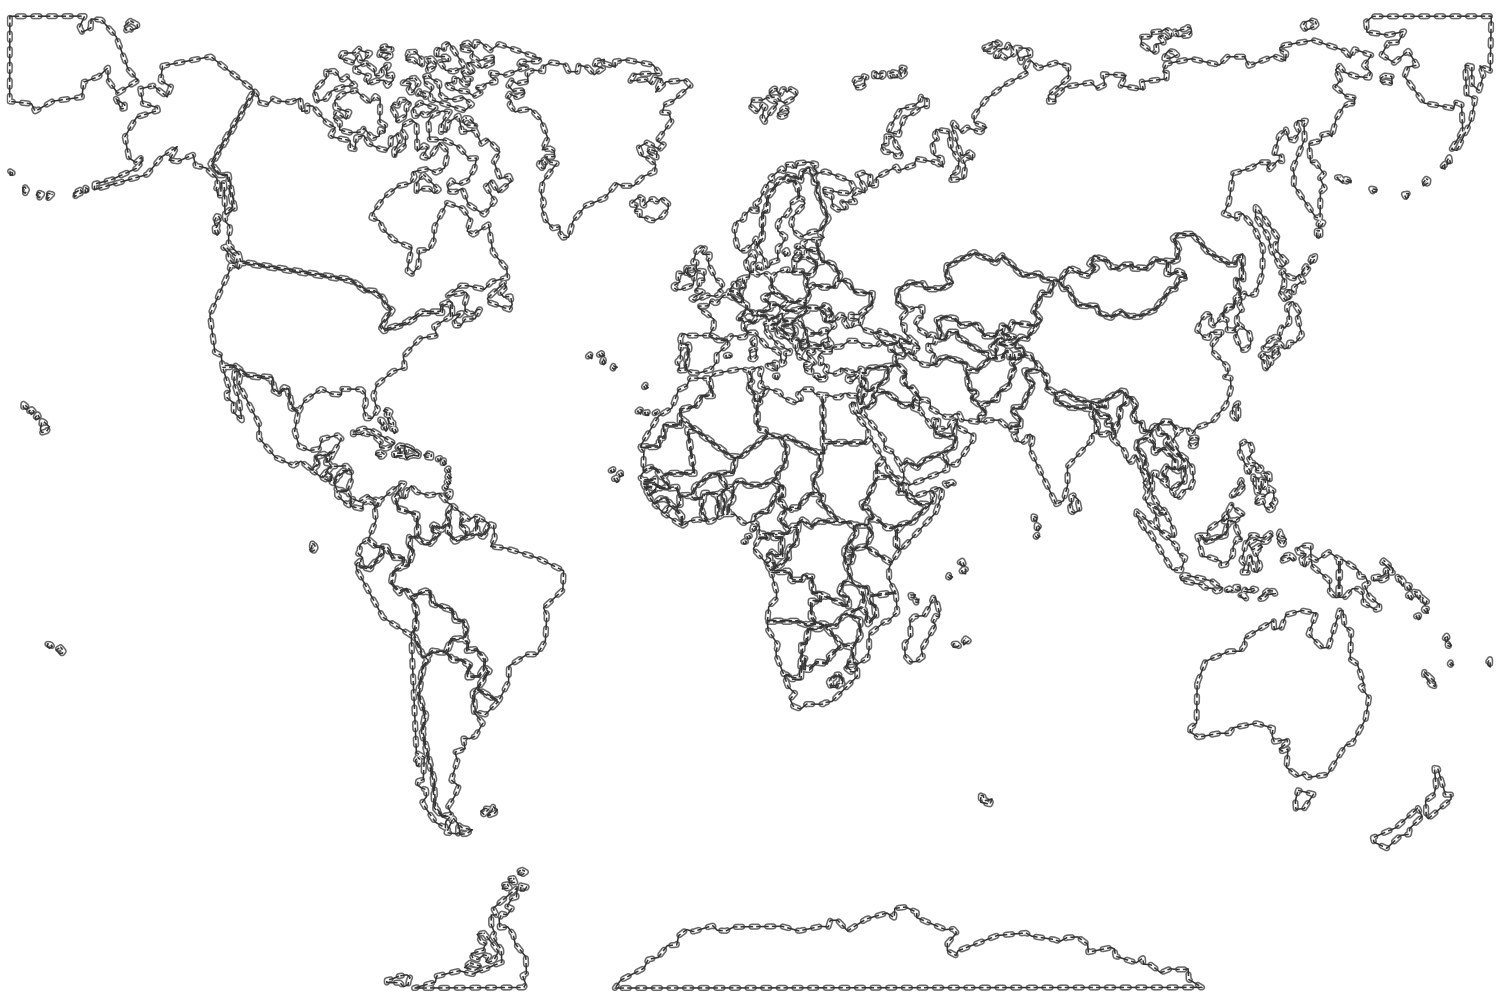 countries coloring pages world map with countries coloring page unique continents countries pages coloring